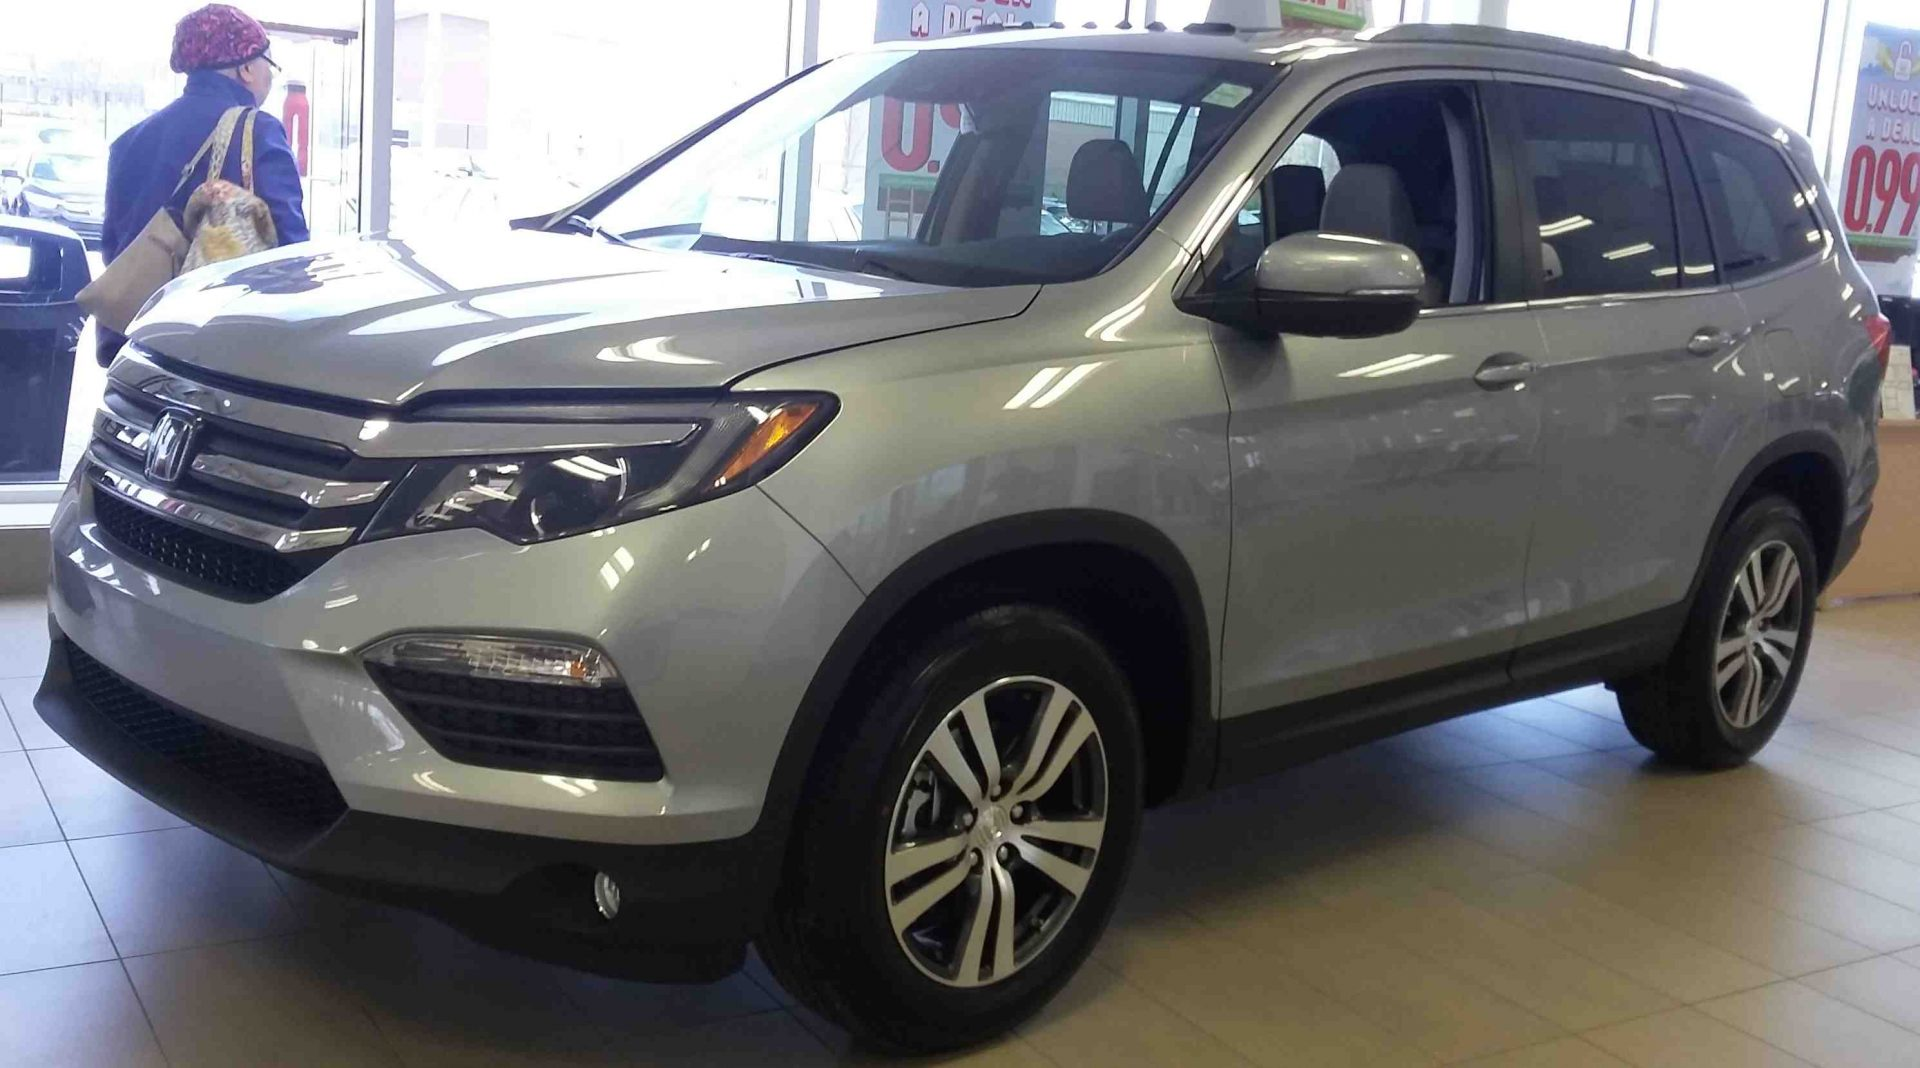 Honda Pilot Towing Capacity U003eu003e Showroom Showoff: 2017 Pilot EX L RES